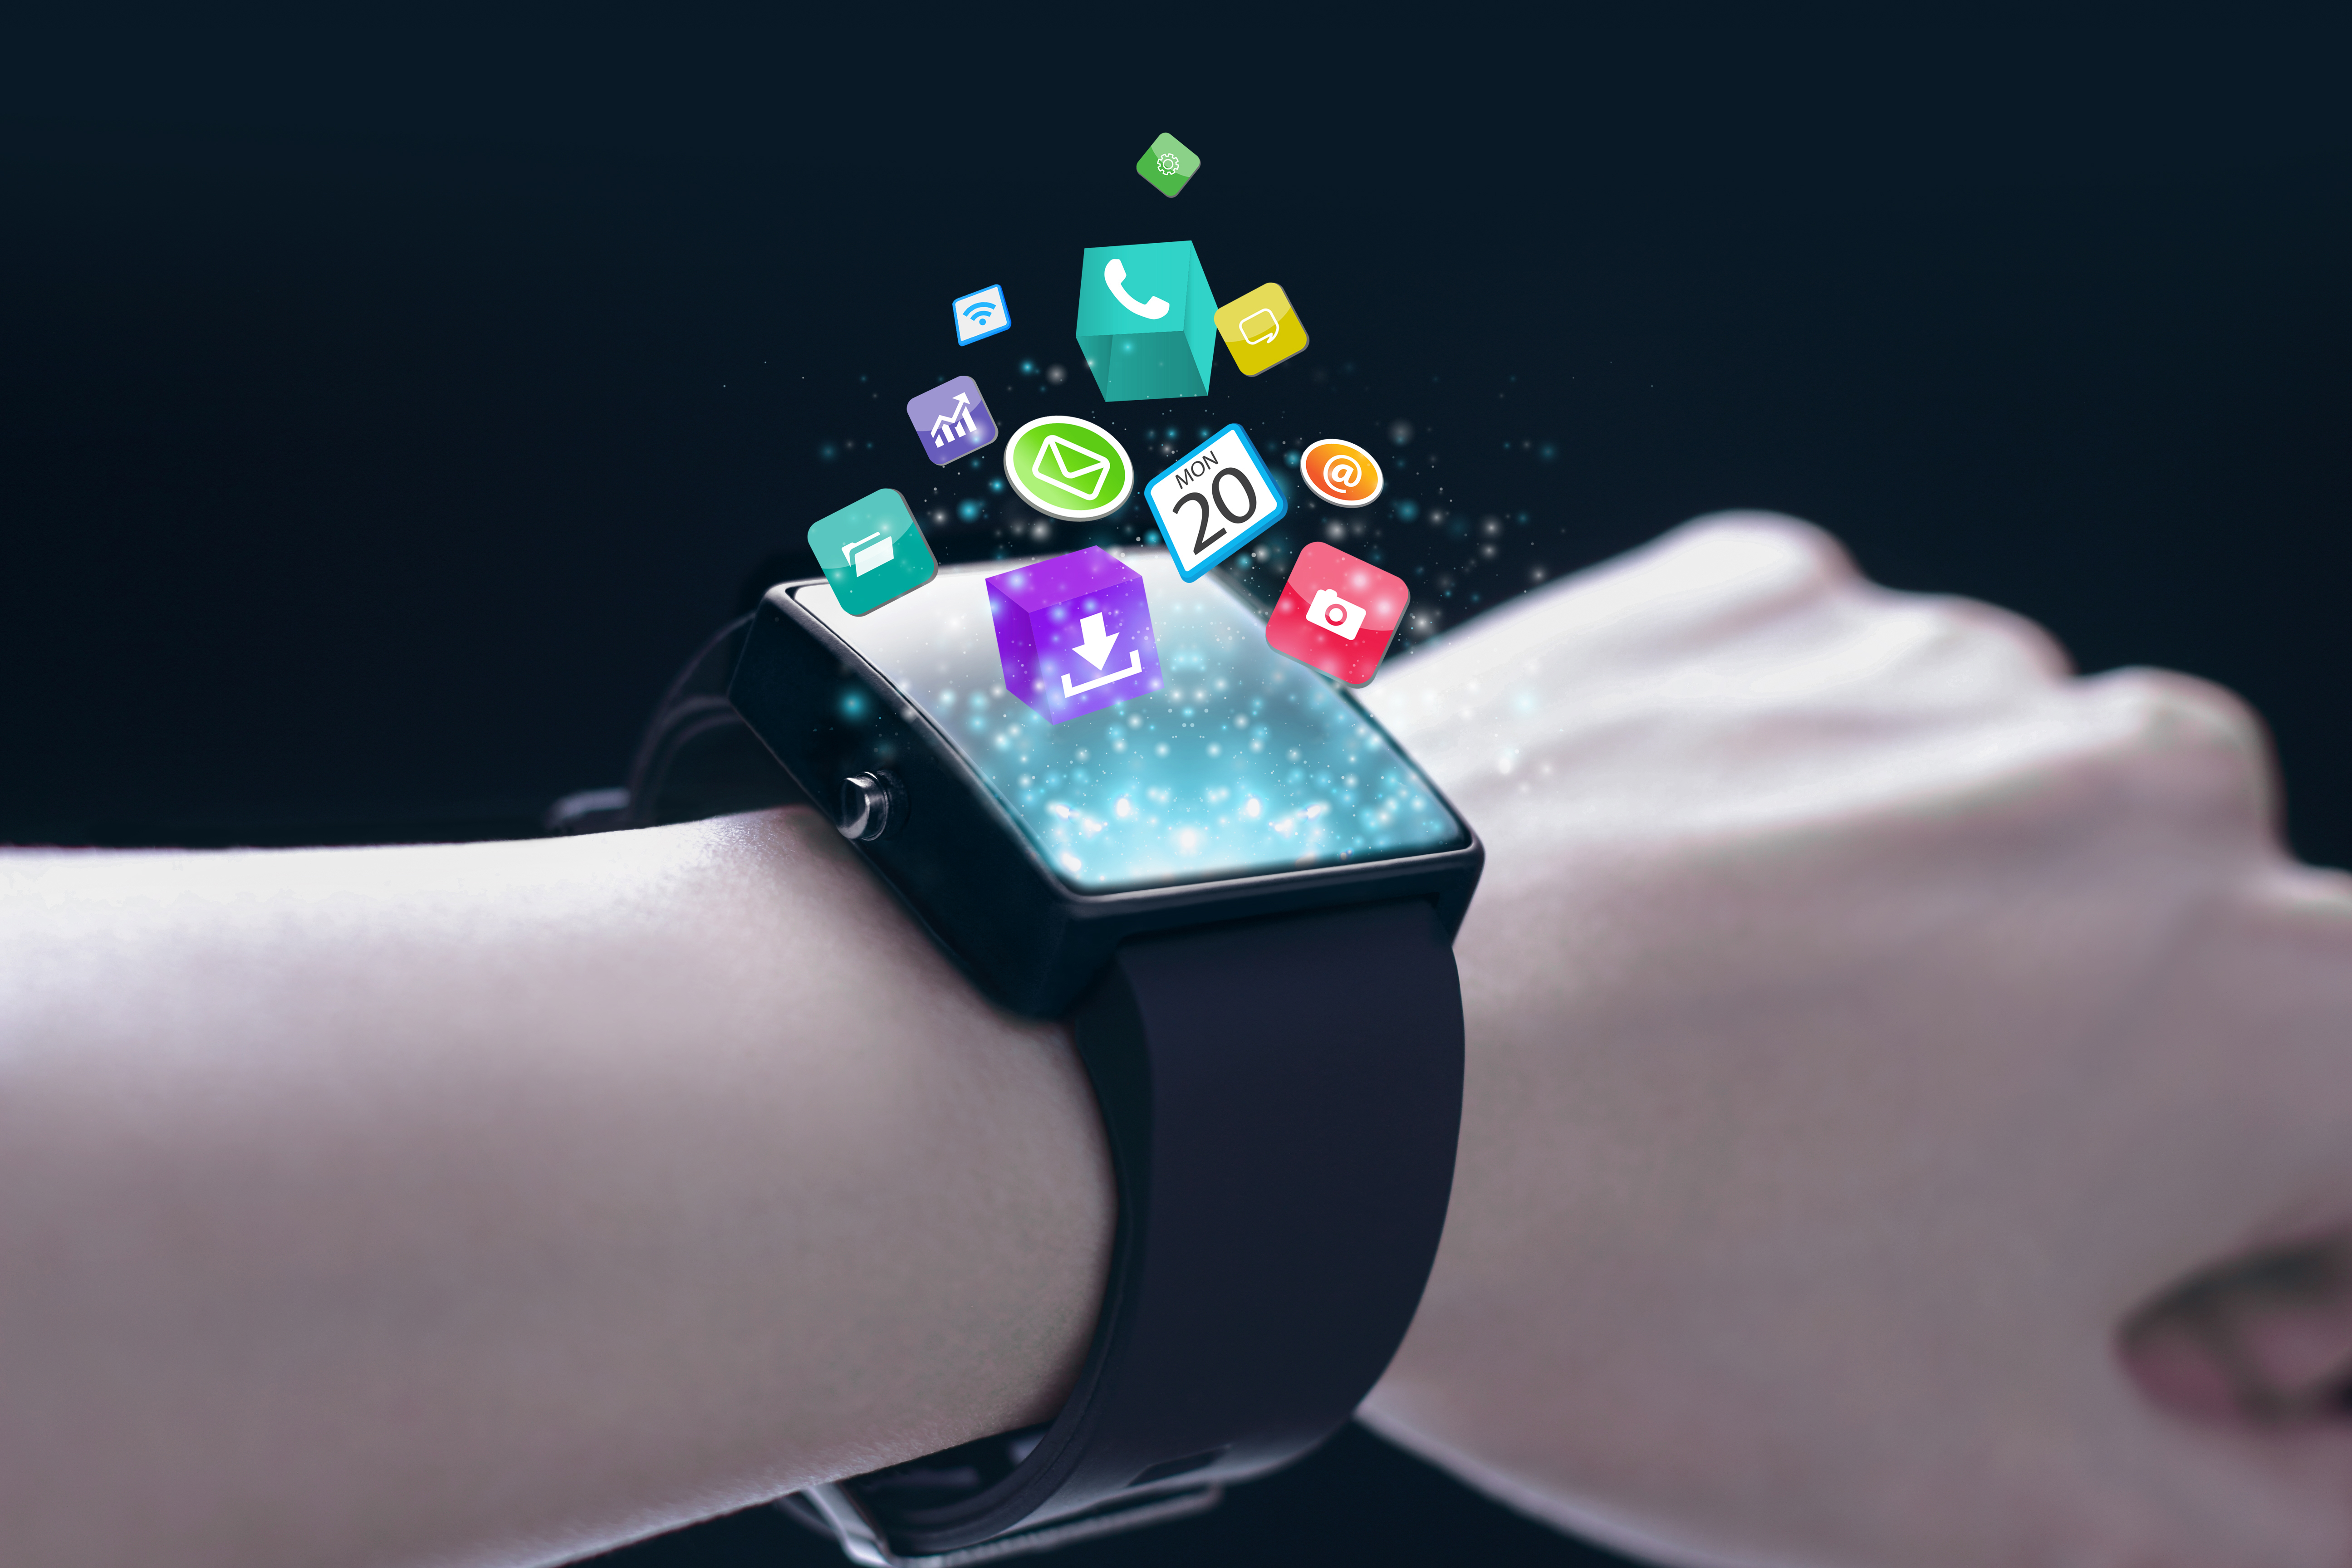 smartwatch with apps